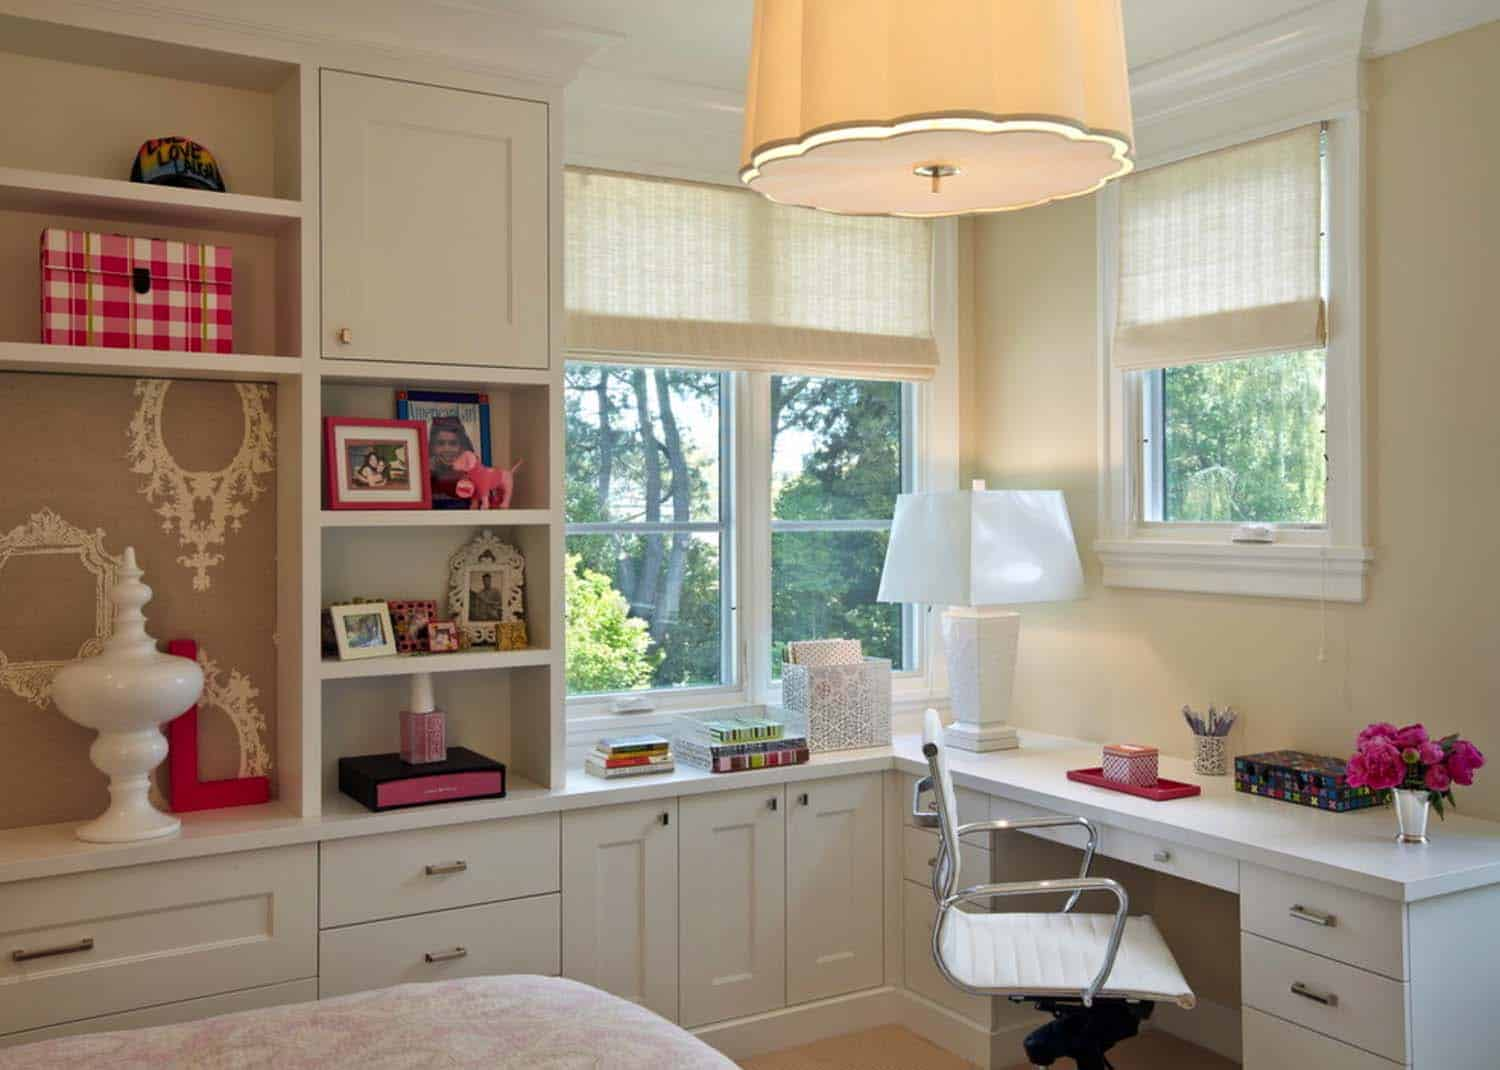 Office in Bedroom Ideas-13-1 Kindesign